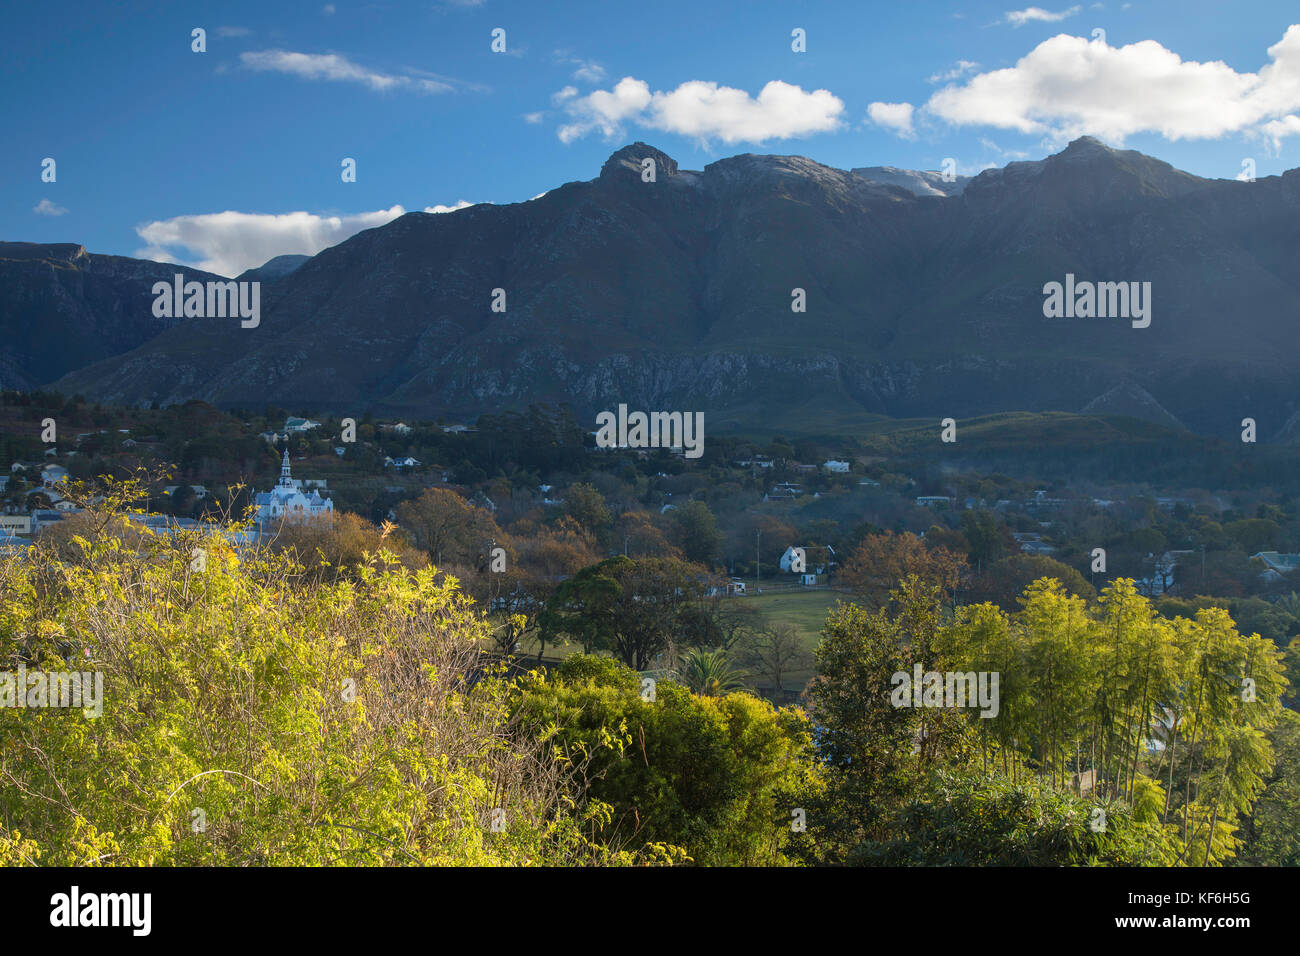 View of Swellendam, Western Cape, South Africa Stock Photo